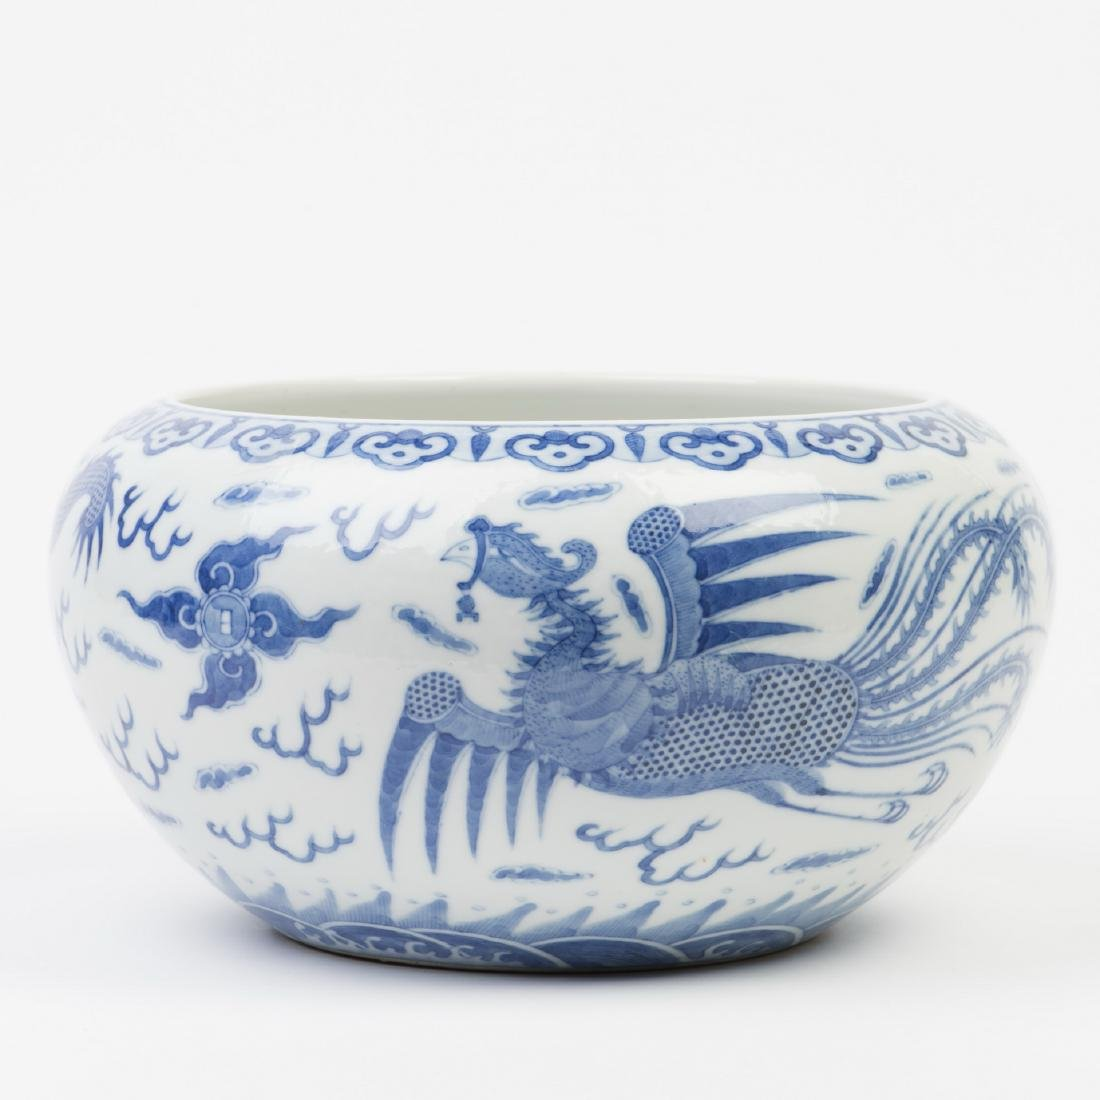 A BLUE AND WHITE PORCELAIN POT